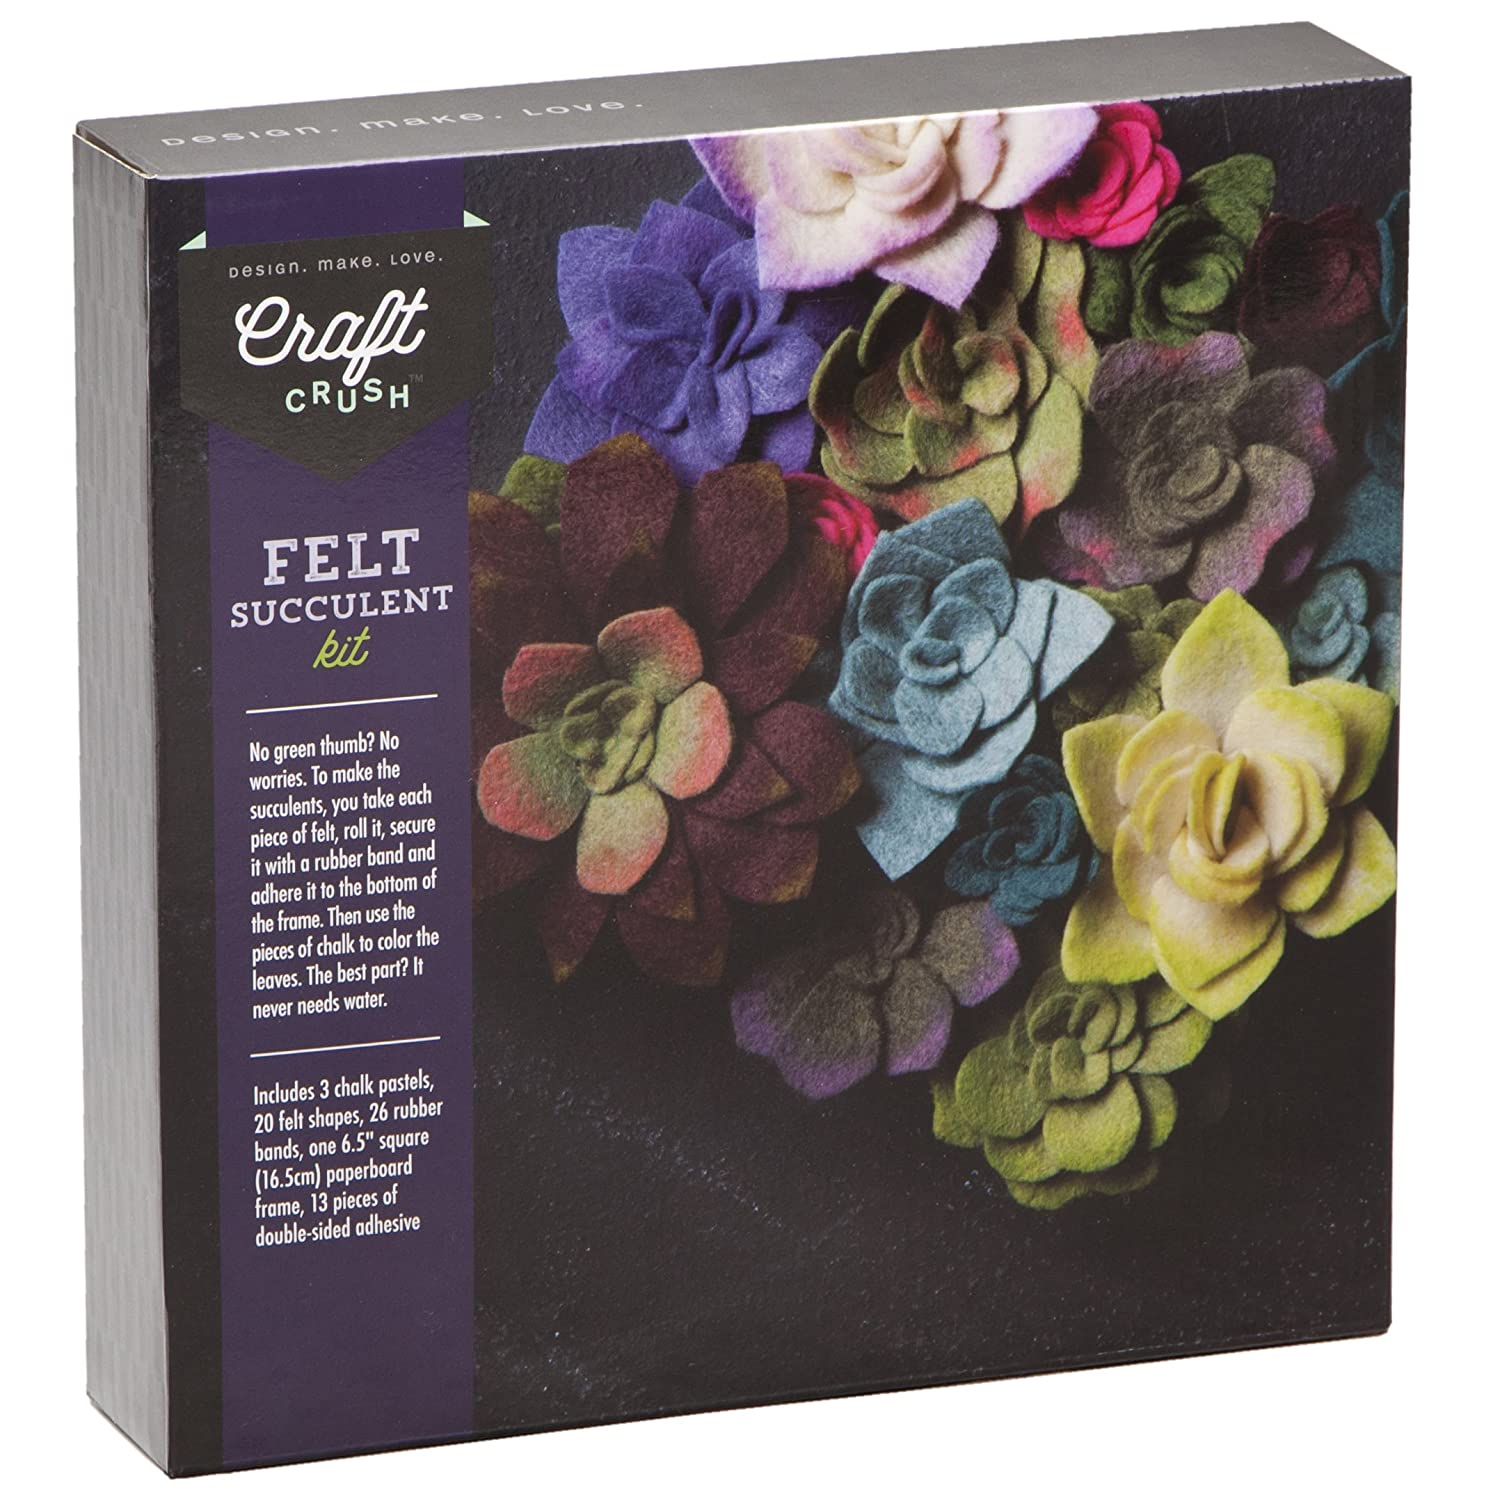 Amazon craft crush felt succulents make your own colorful amazon craft crush felt succulents make your own colorful floral centerpiece home dcor crafting kit for teens adults jeuxipadfo Image collections